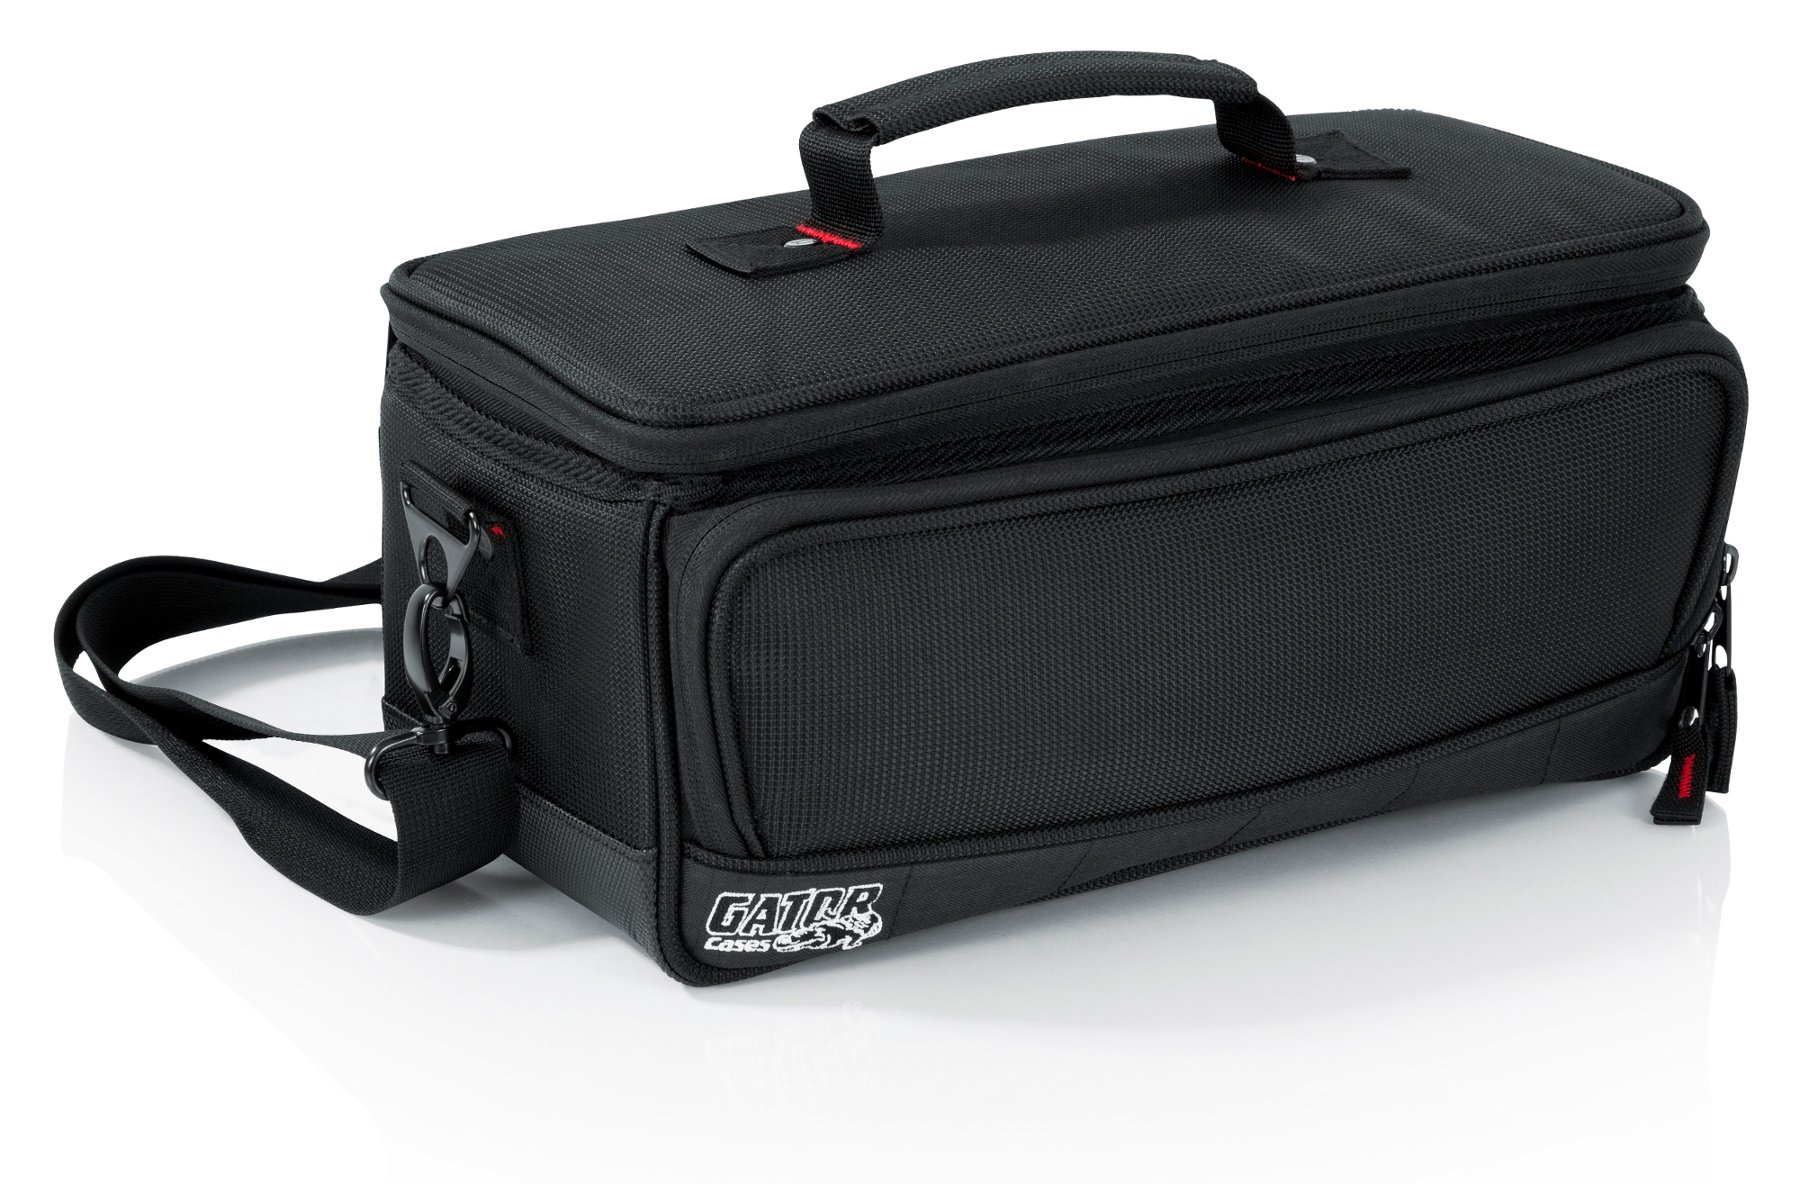 Gator Cases G-MIXERBAG-1306 Padded Carry Bag For X Air Series Mixers G-MIXERBAG-1306